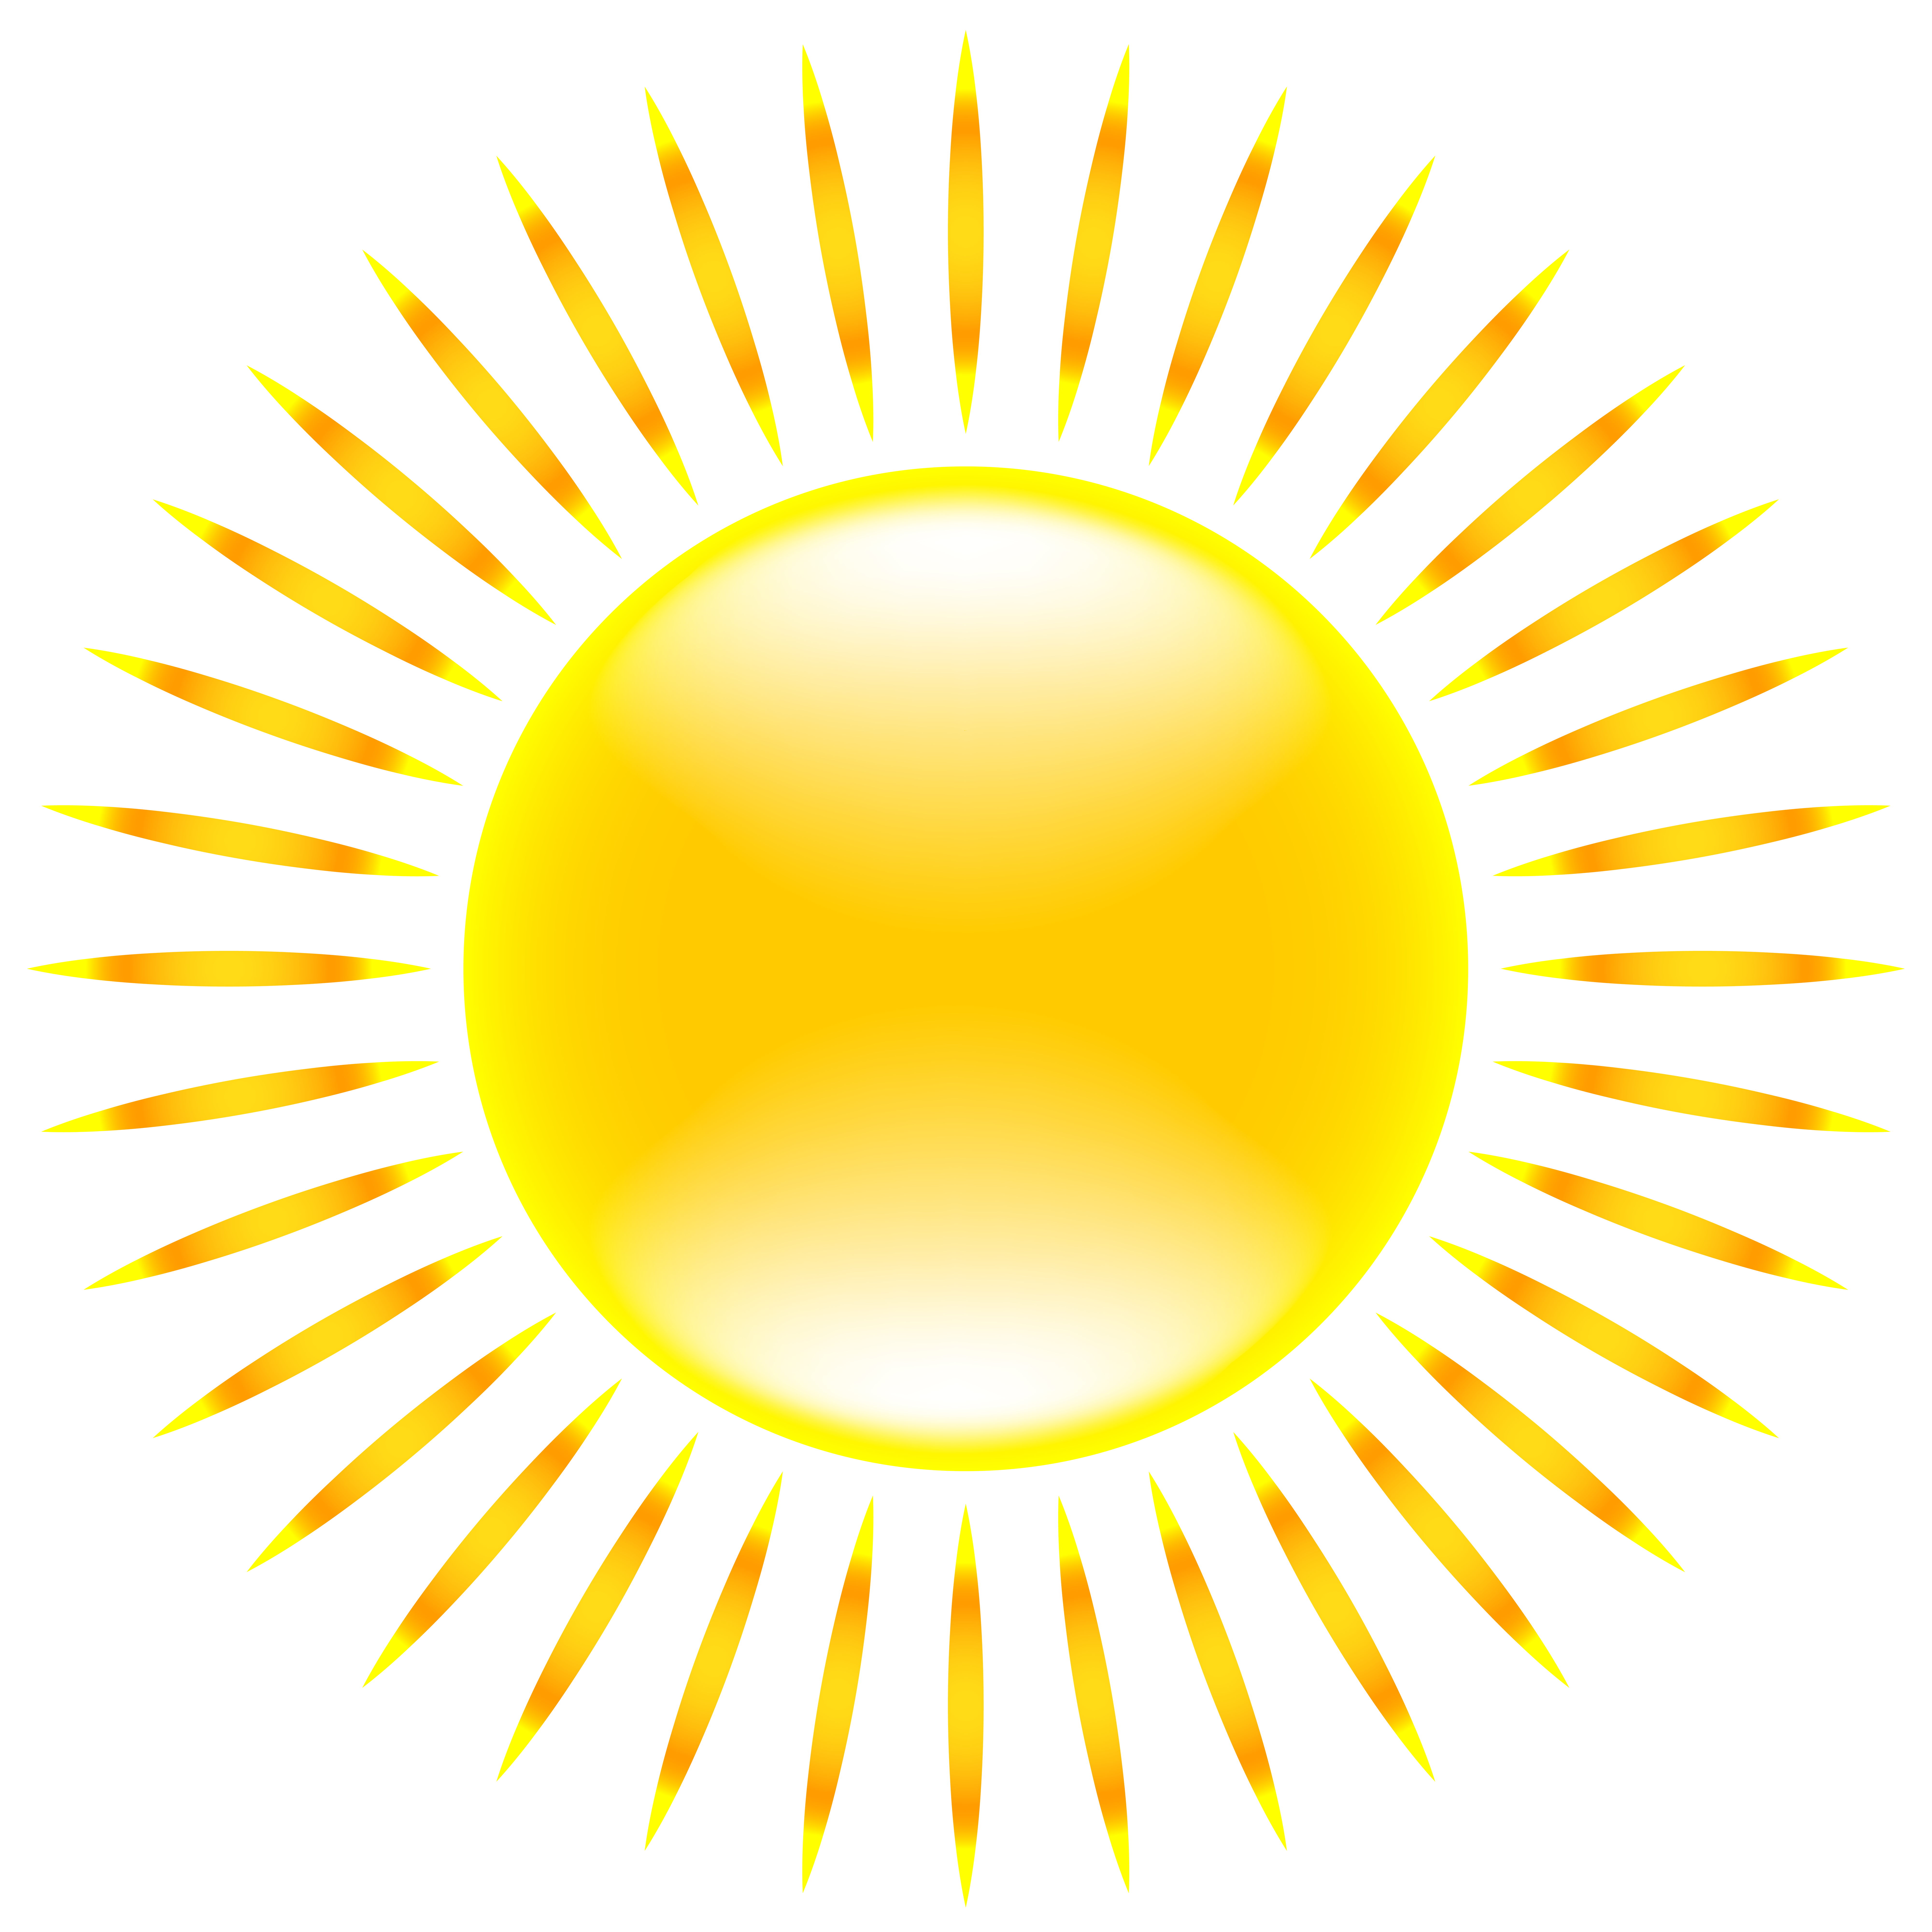 Sun clipart hd clipart royalty free stock Sun Transparent Clip Art PNG Image   Gallery Yopriceville - High ... clipart royalty free stock